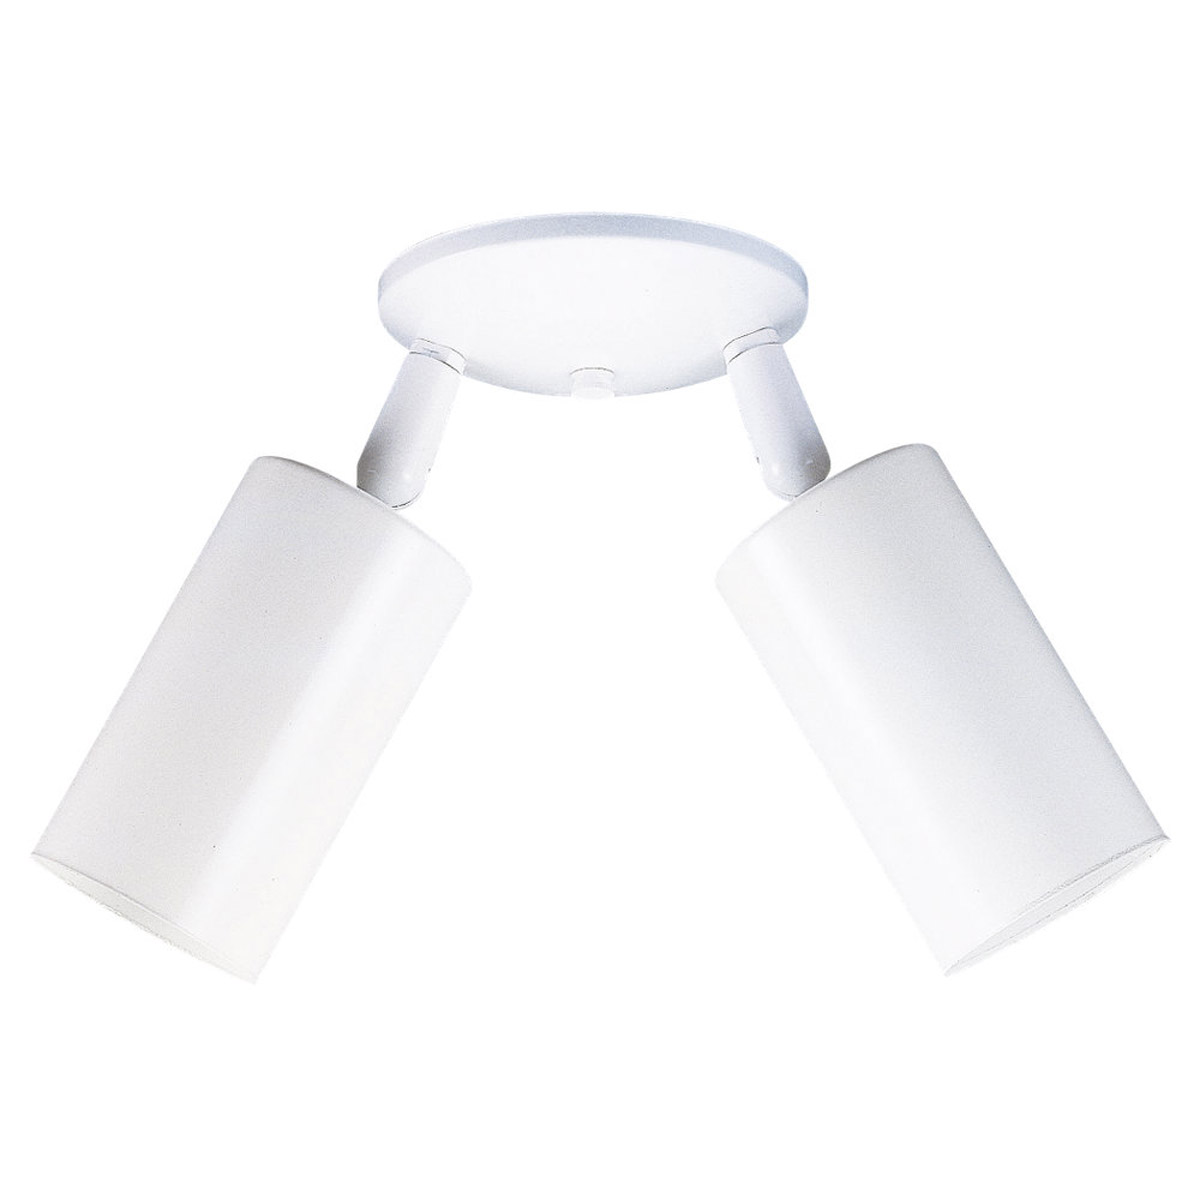 Sea Gull Lighting Bullets 2 Light Directional Ceiling Light in White 2013-15